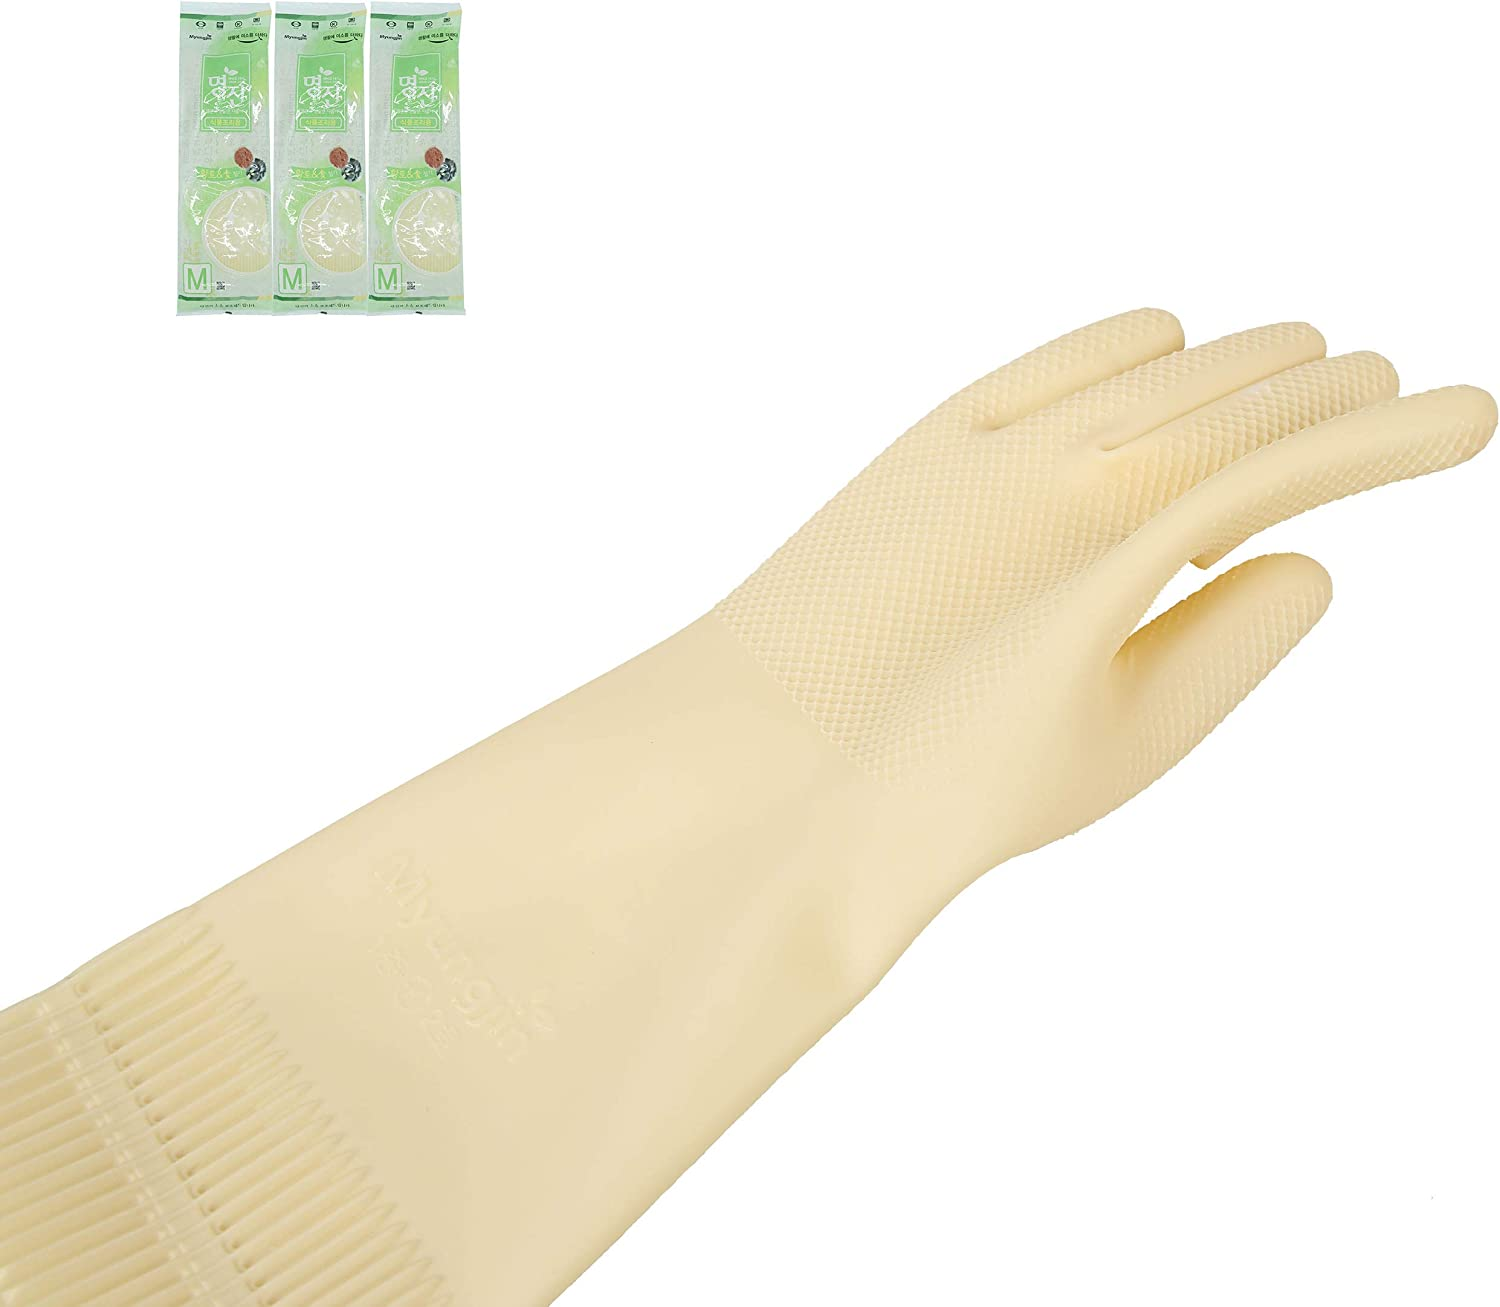 All Natural Latex Rubber Gloves Reusable Durable Medium 3 Pairs No Artificial Coloring Non-Sticky Ideal Household (M)